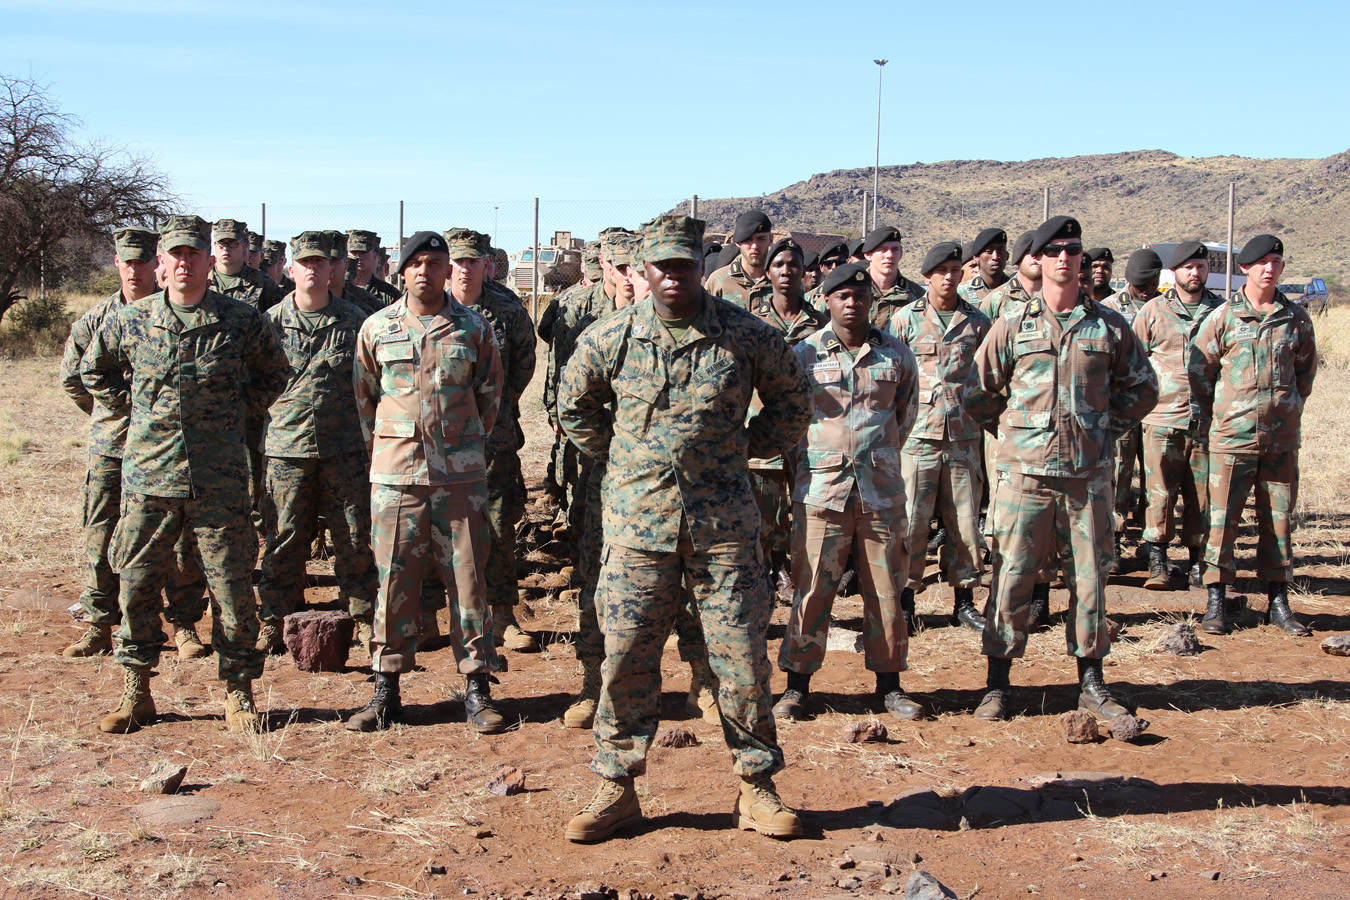 U.S. and South African Marines gathered for the opening ceremony of Shared Accord 2017 at the South African Army Combat Training Center, Lohatla, South Africa. During SA 17, South African and U.S. forces train together in areas such as counter-IED training, strong point defense and offensive operations and Peacekeeping scenarios. The exercise culminates with a unilateral, combined arms maneuver live-fire demonstration.